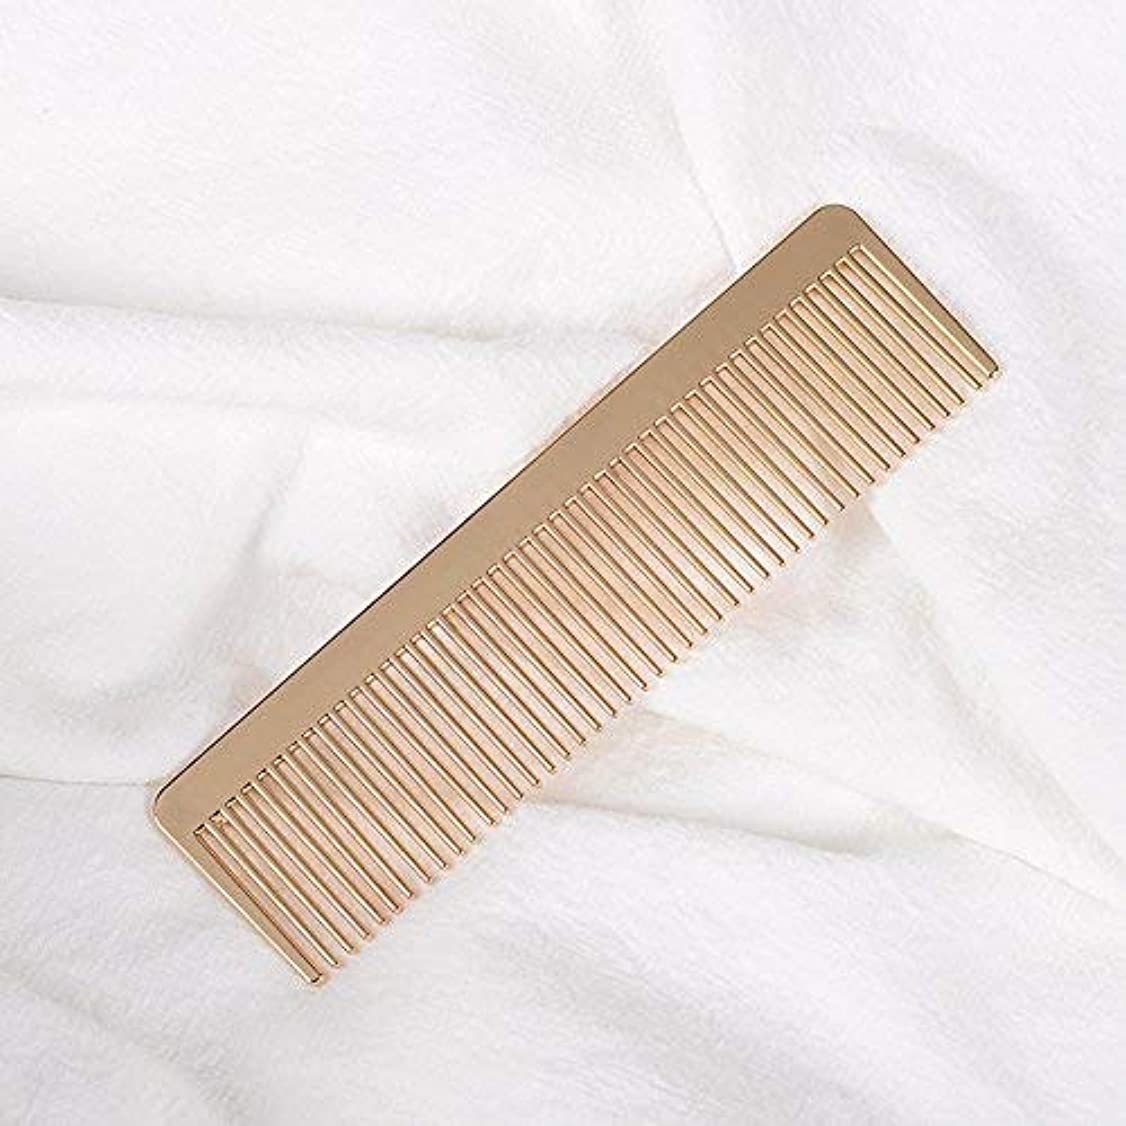 厳政府自分自身Grtdrm Portable Metal Comb, Minimalist Pocket Golden Hair Comb for Women Men Unisex [並行輸入品]